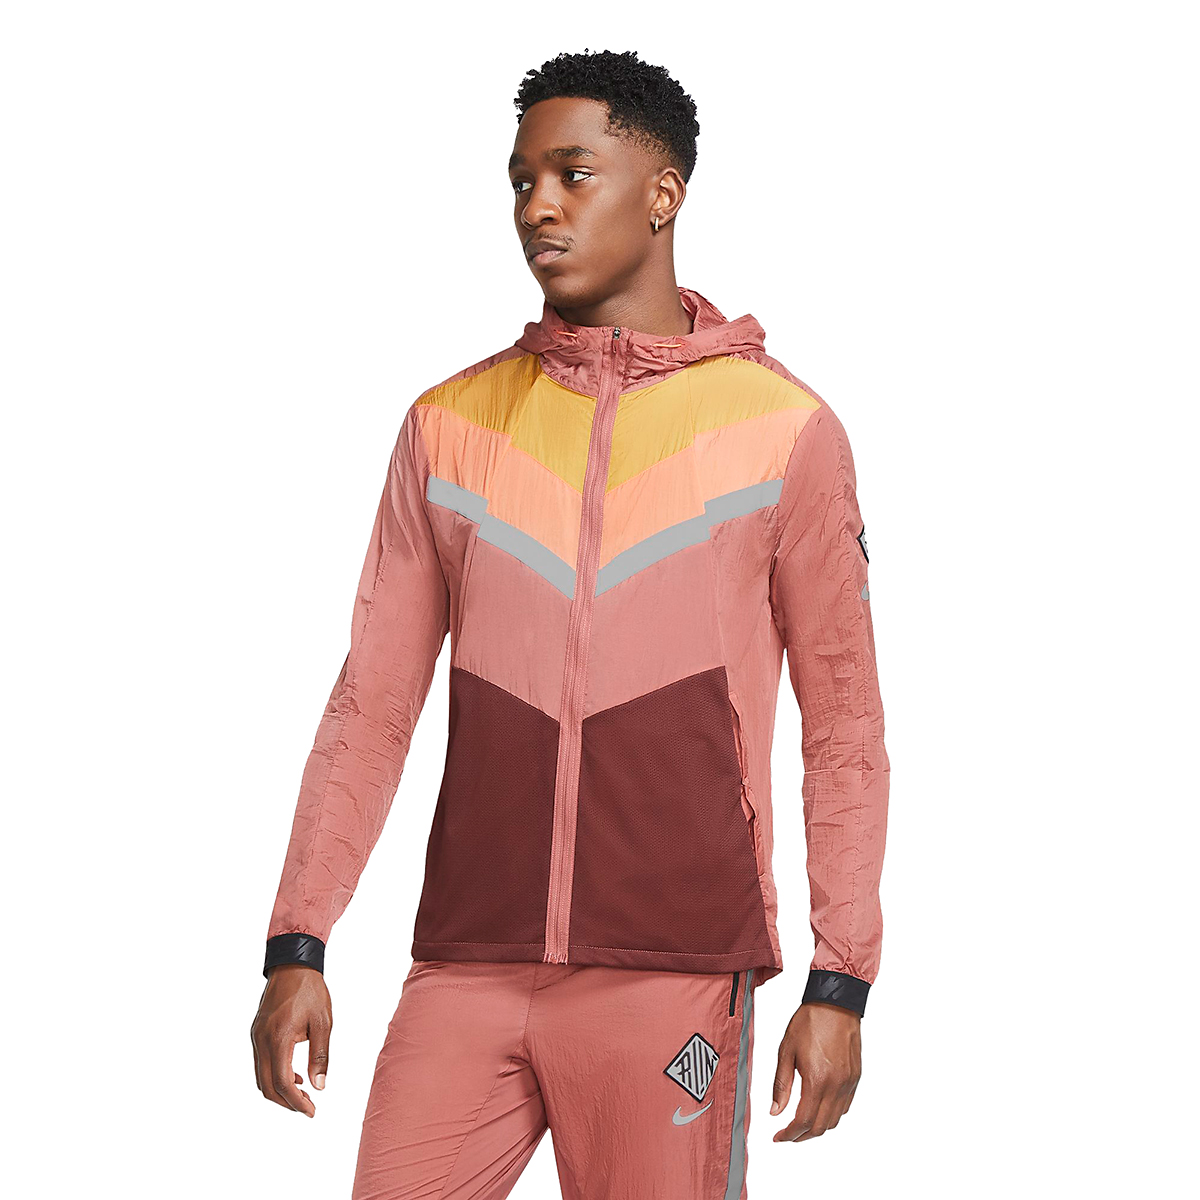 Men's Nike Windrunner Wild Run Running Jacket - Color: Claystone Red/Chutney/Camellia - Size: S, Claystone Red/Chutney/Camellia, large, image 1